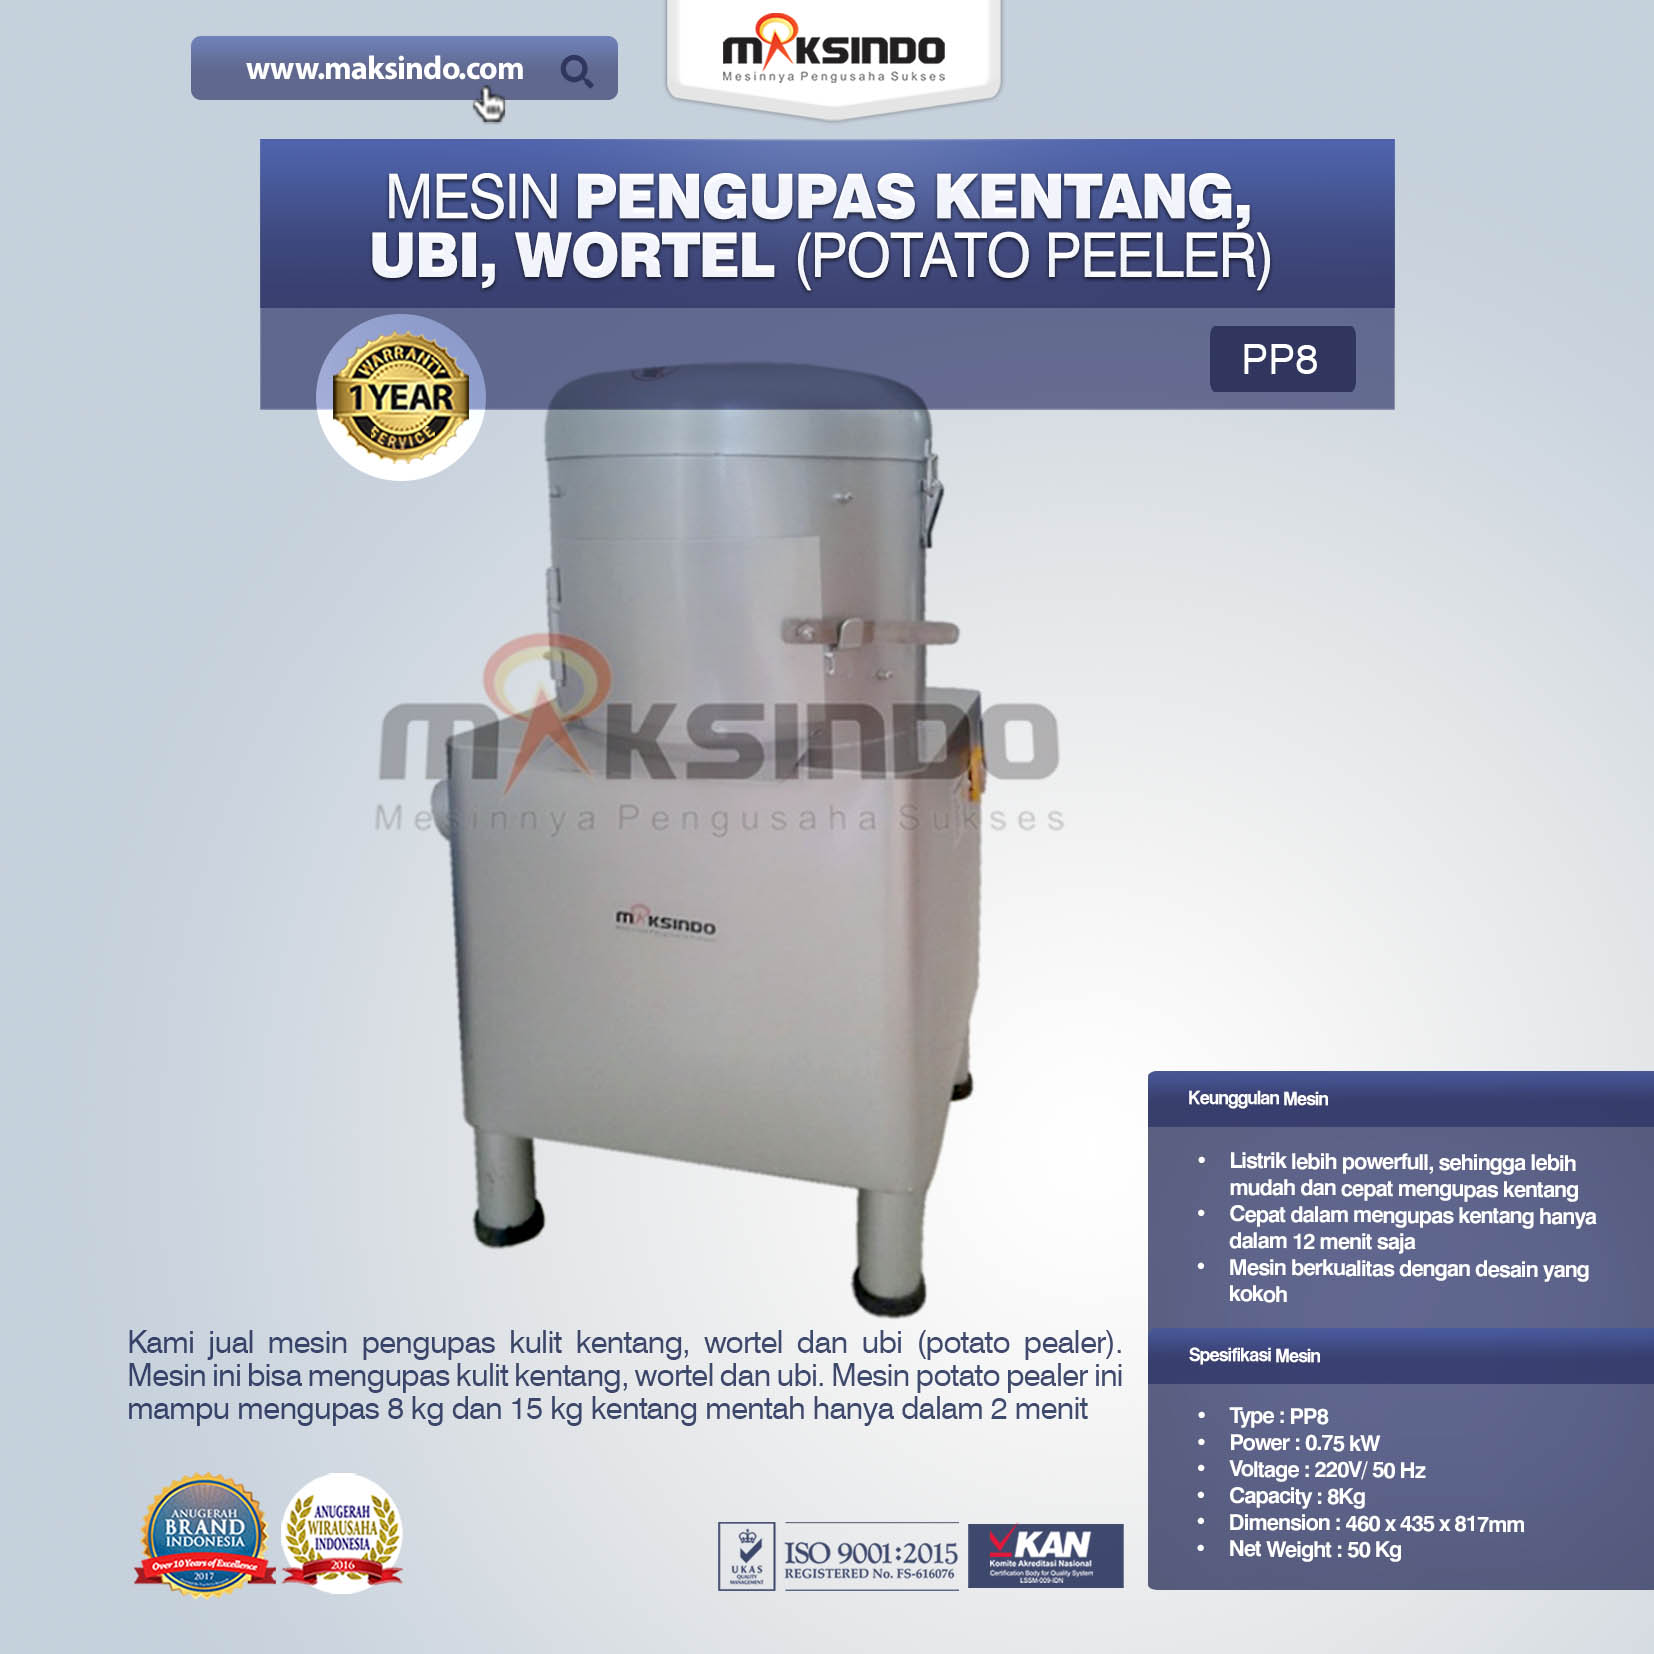 Mesin Pengupas Kentang, Ubi, Wortel (Potato Peeler) PP8